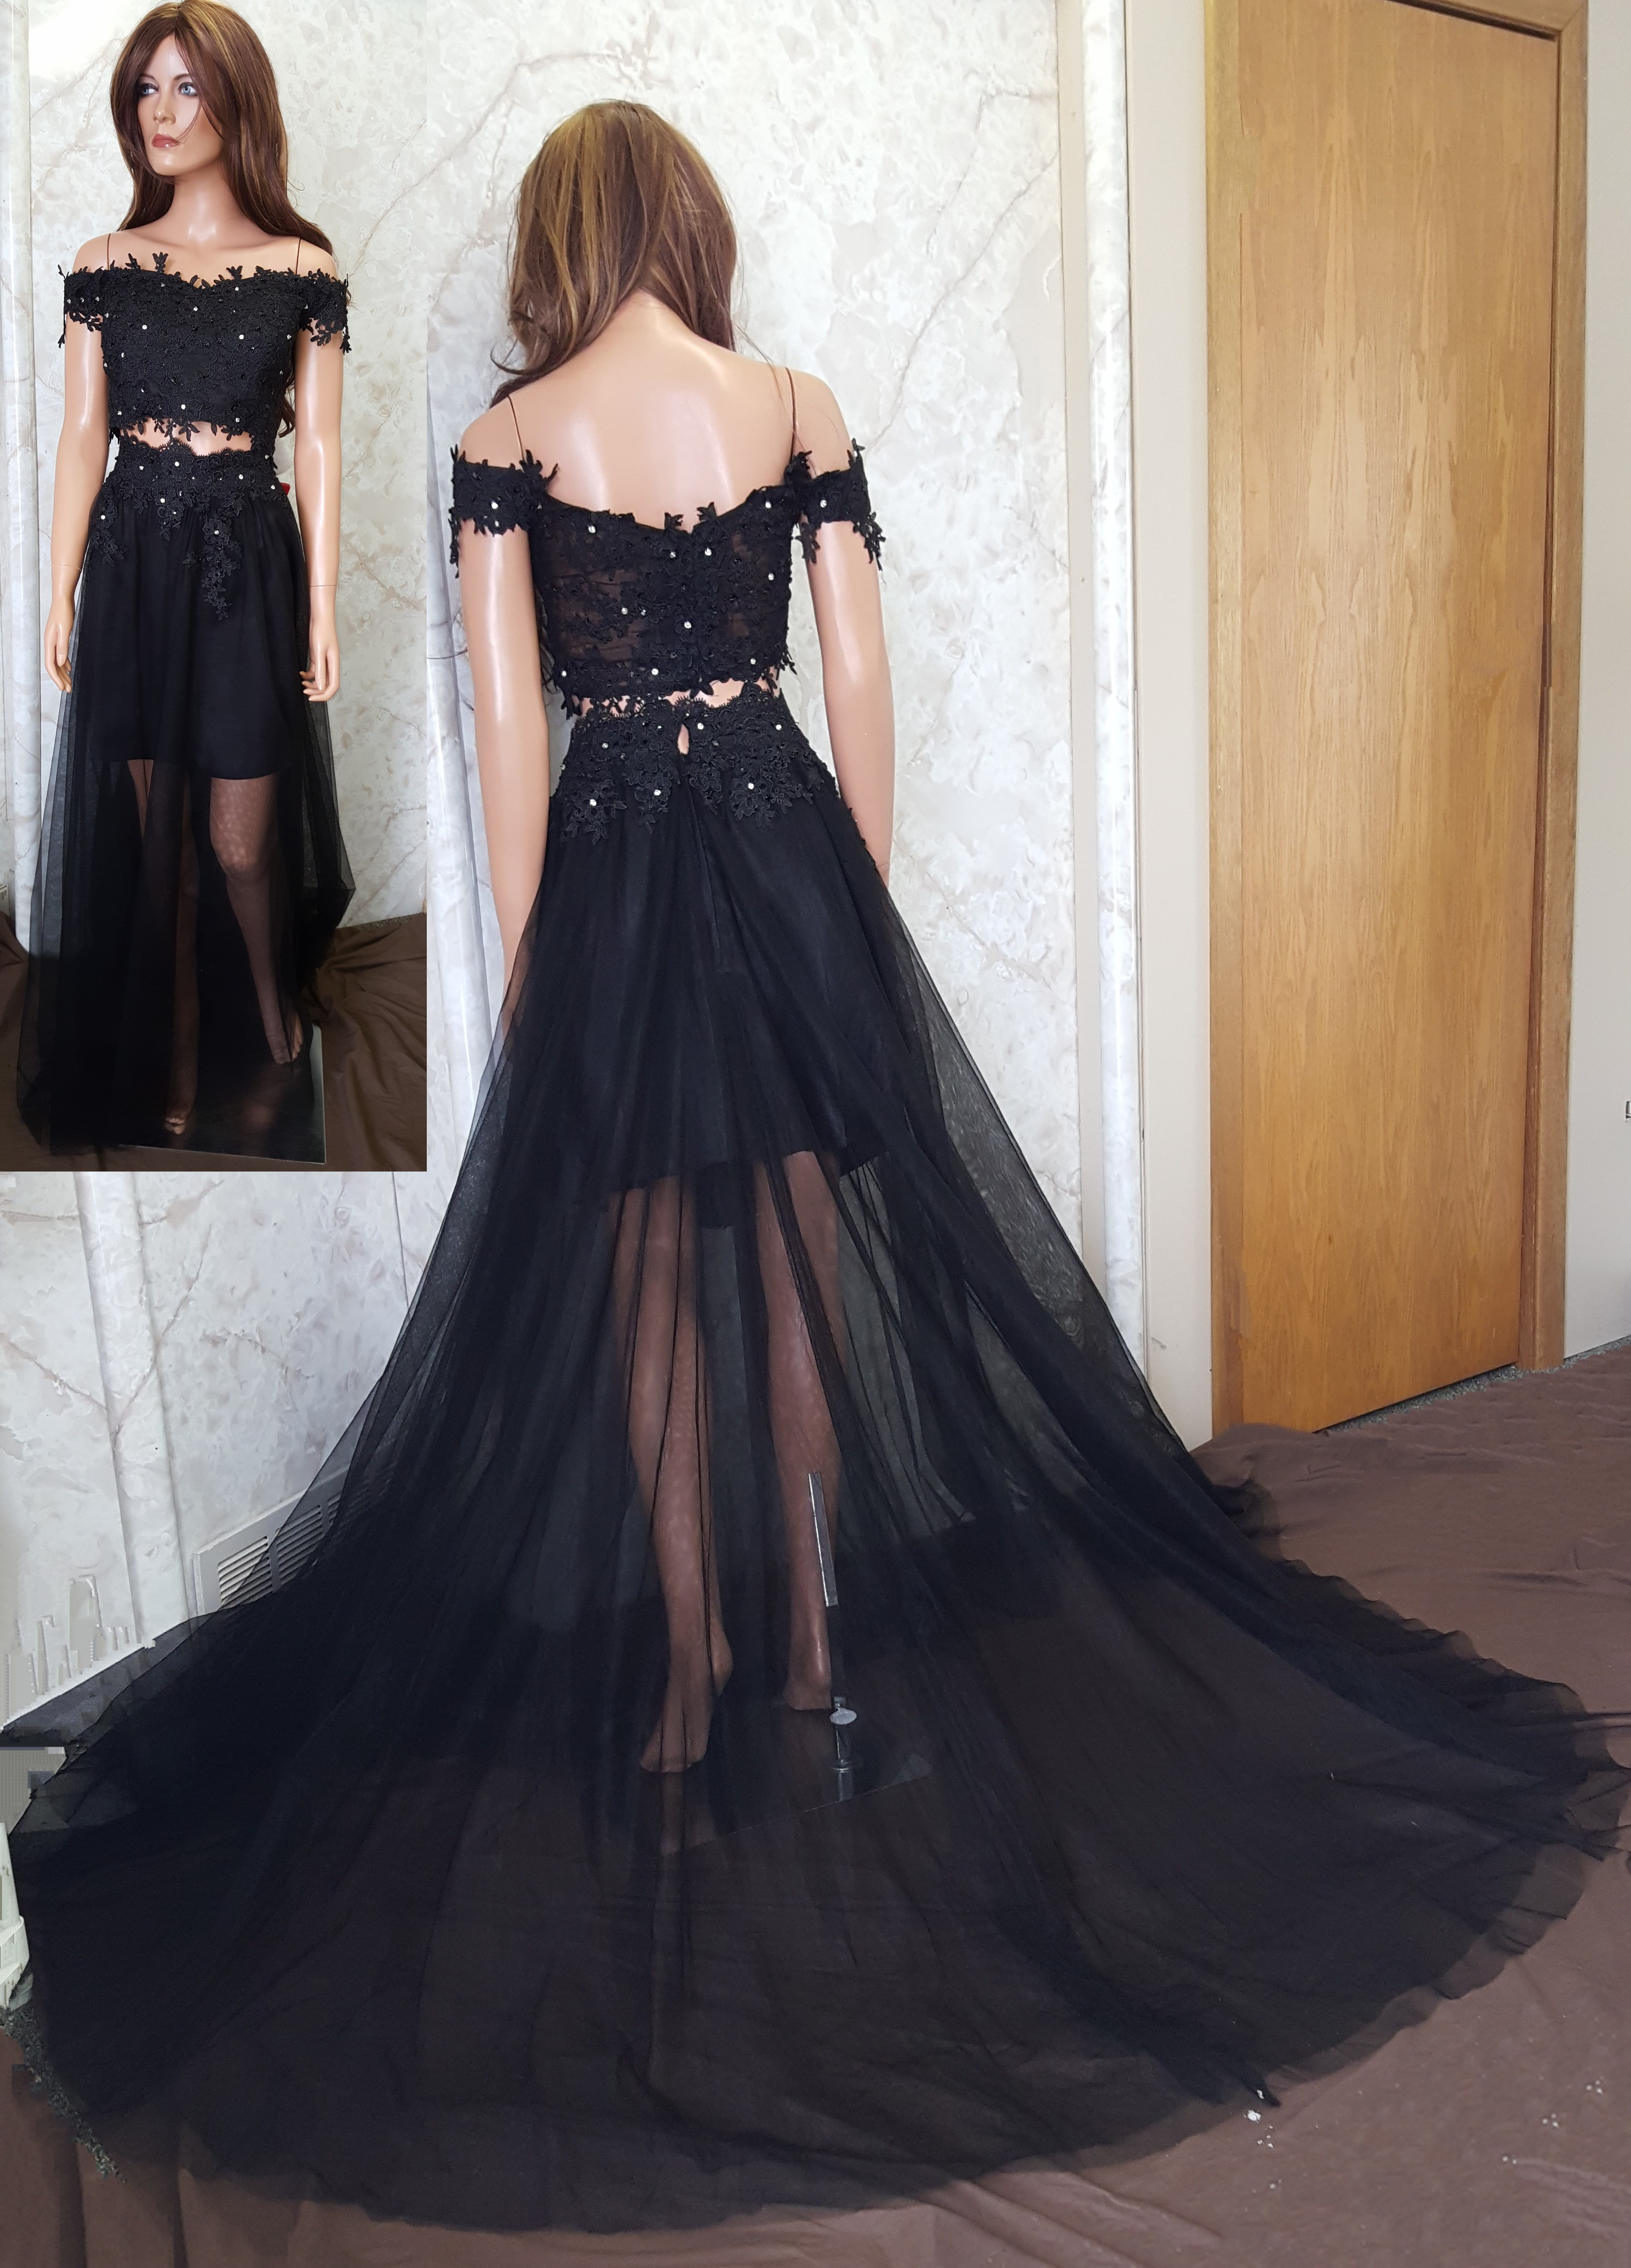 0149928c8ffe Fabric  Organza and satin. Color  black. Neckline  off shoulder.  Silhouette  2 piece crop top. Waist  bare. Embellishment  black and silver  beads